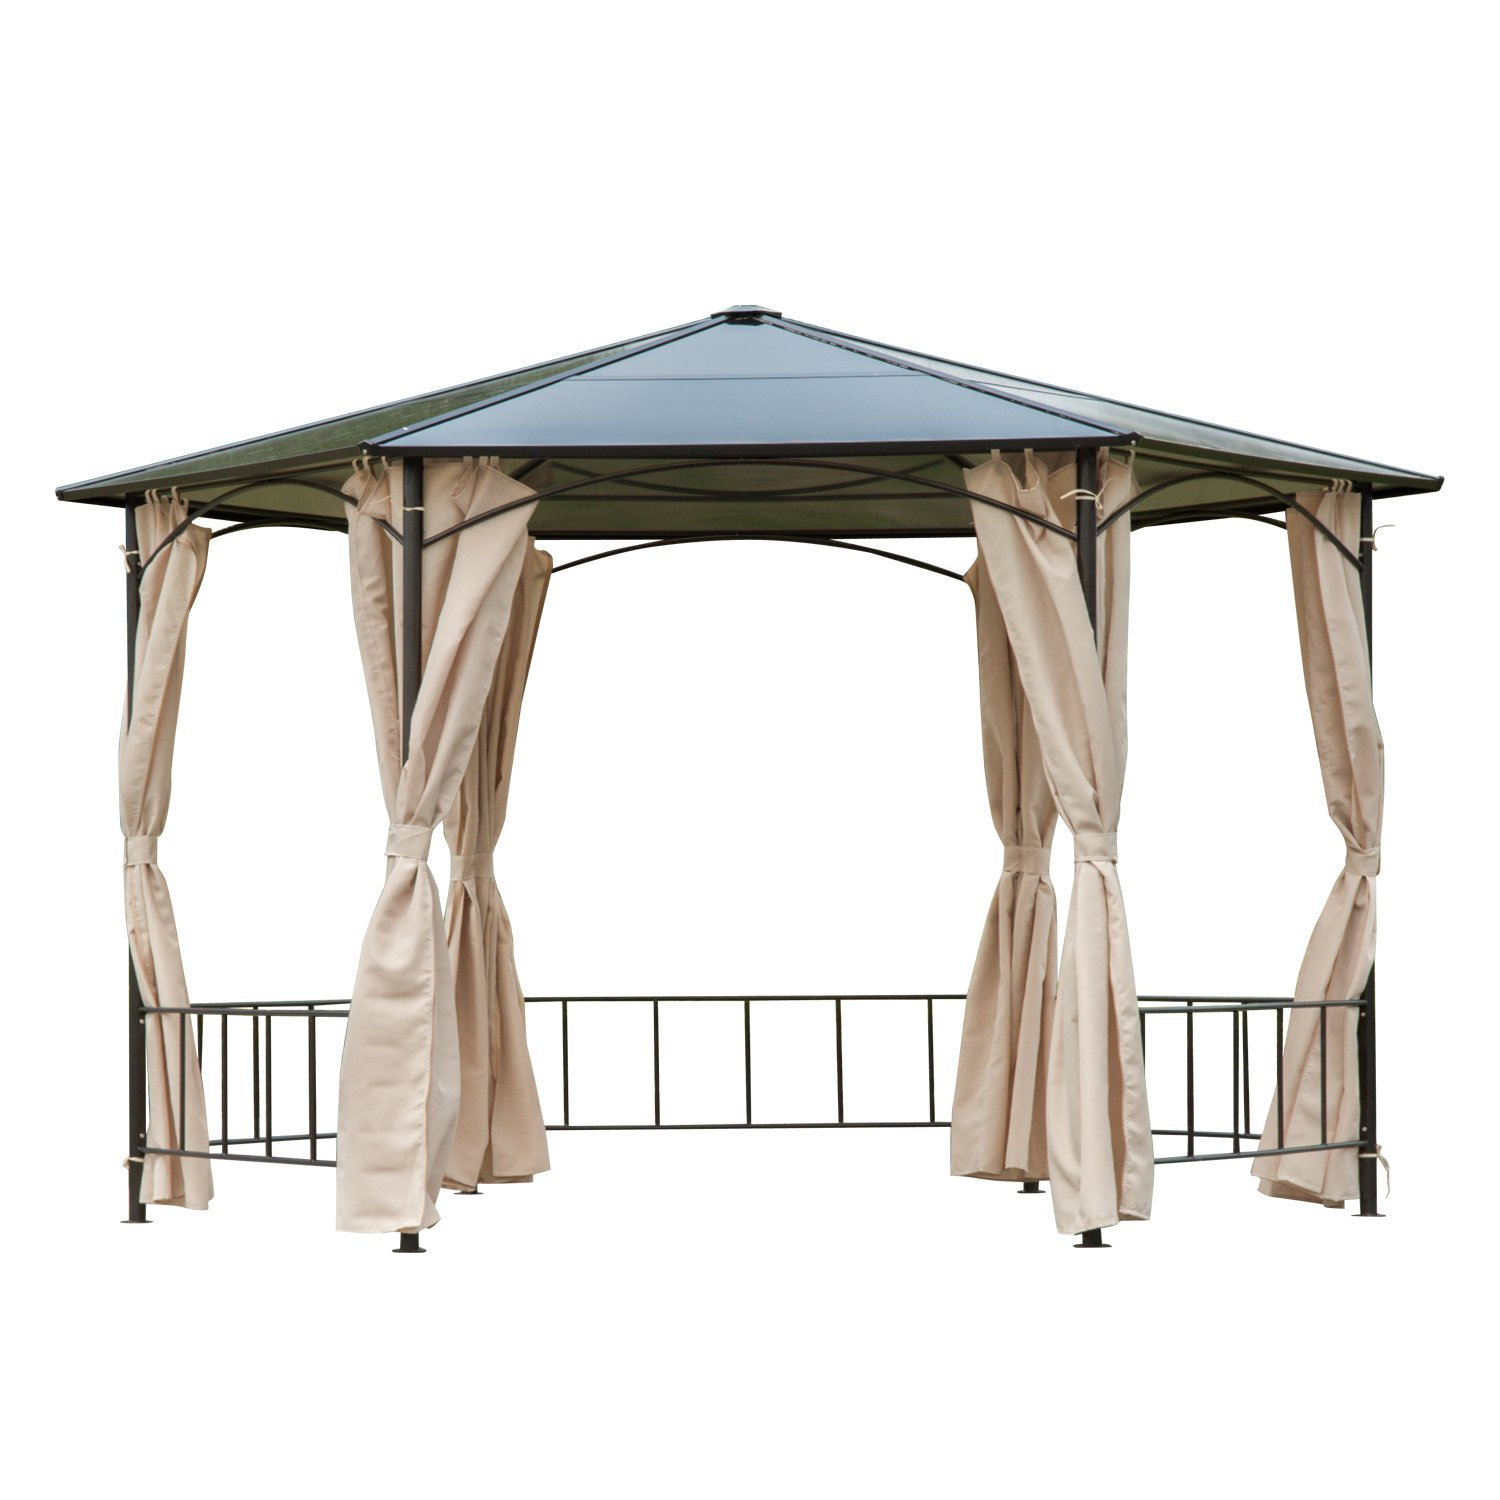 Image of £467.99 Outsunny 2m Hexagonal Patio Metal Gazebo-Brown/Beige / Gazebo Sun Shade Canopy Marquee Party Tent Garden Shelter Polycarbonate Roof w/Side Wall Curtain Side Brown 84C-070 5056029886380